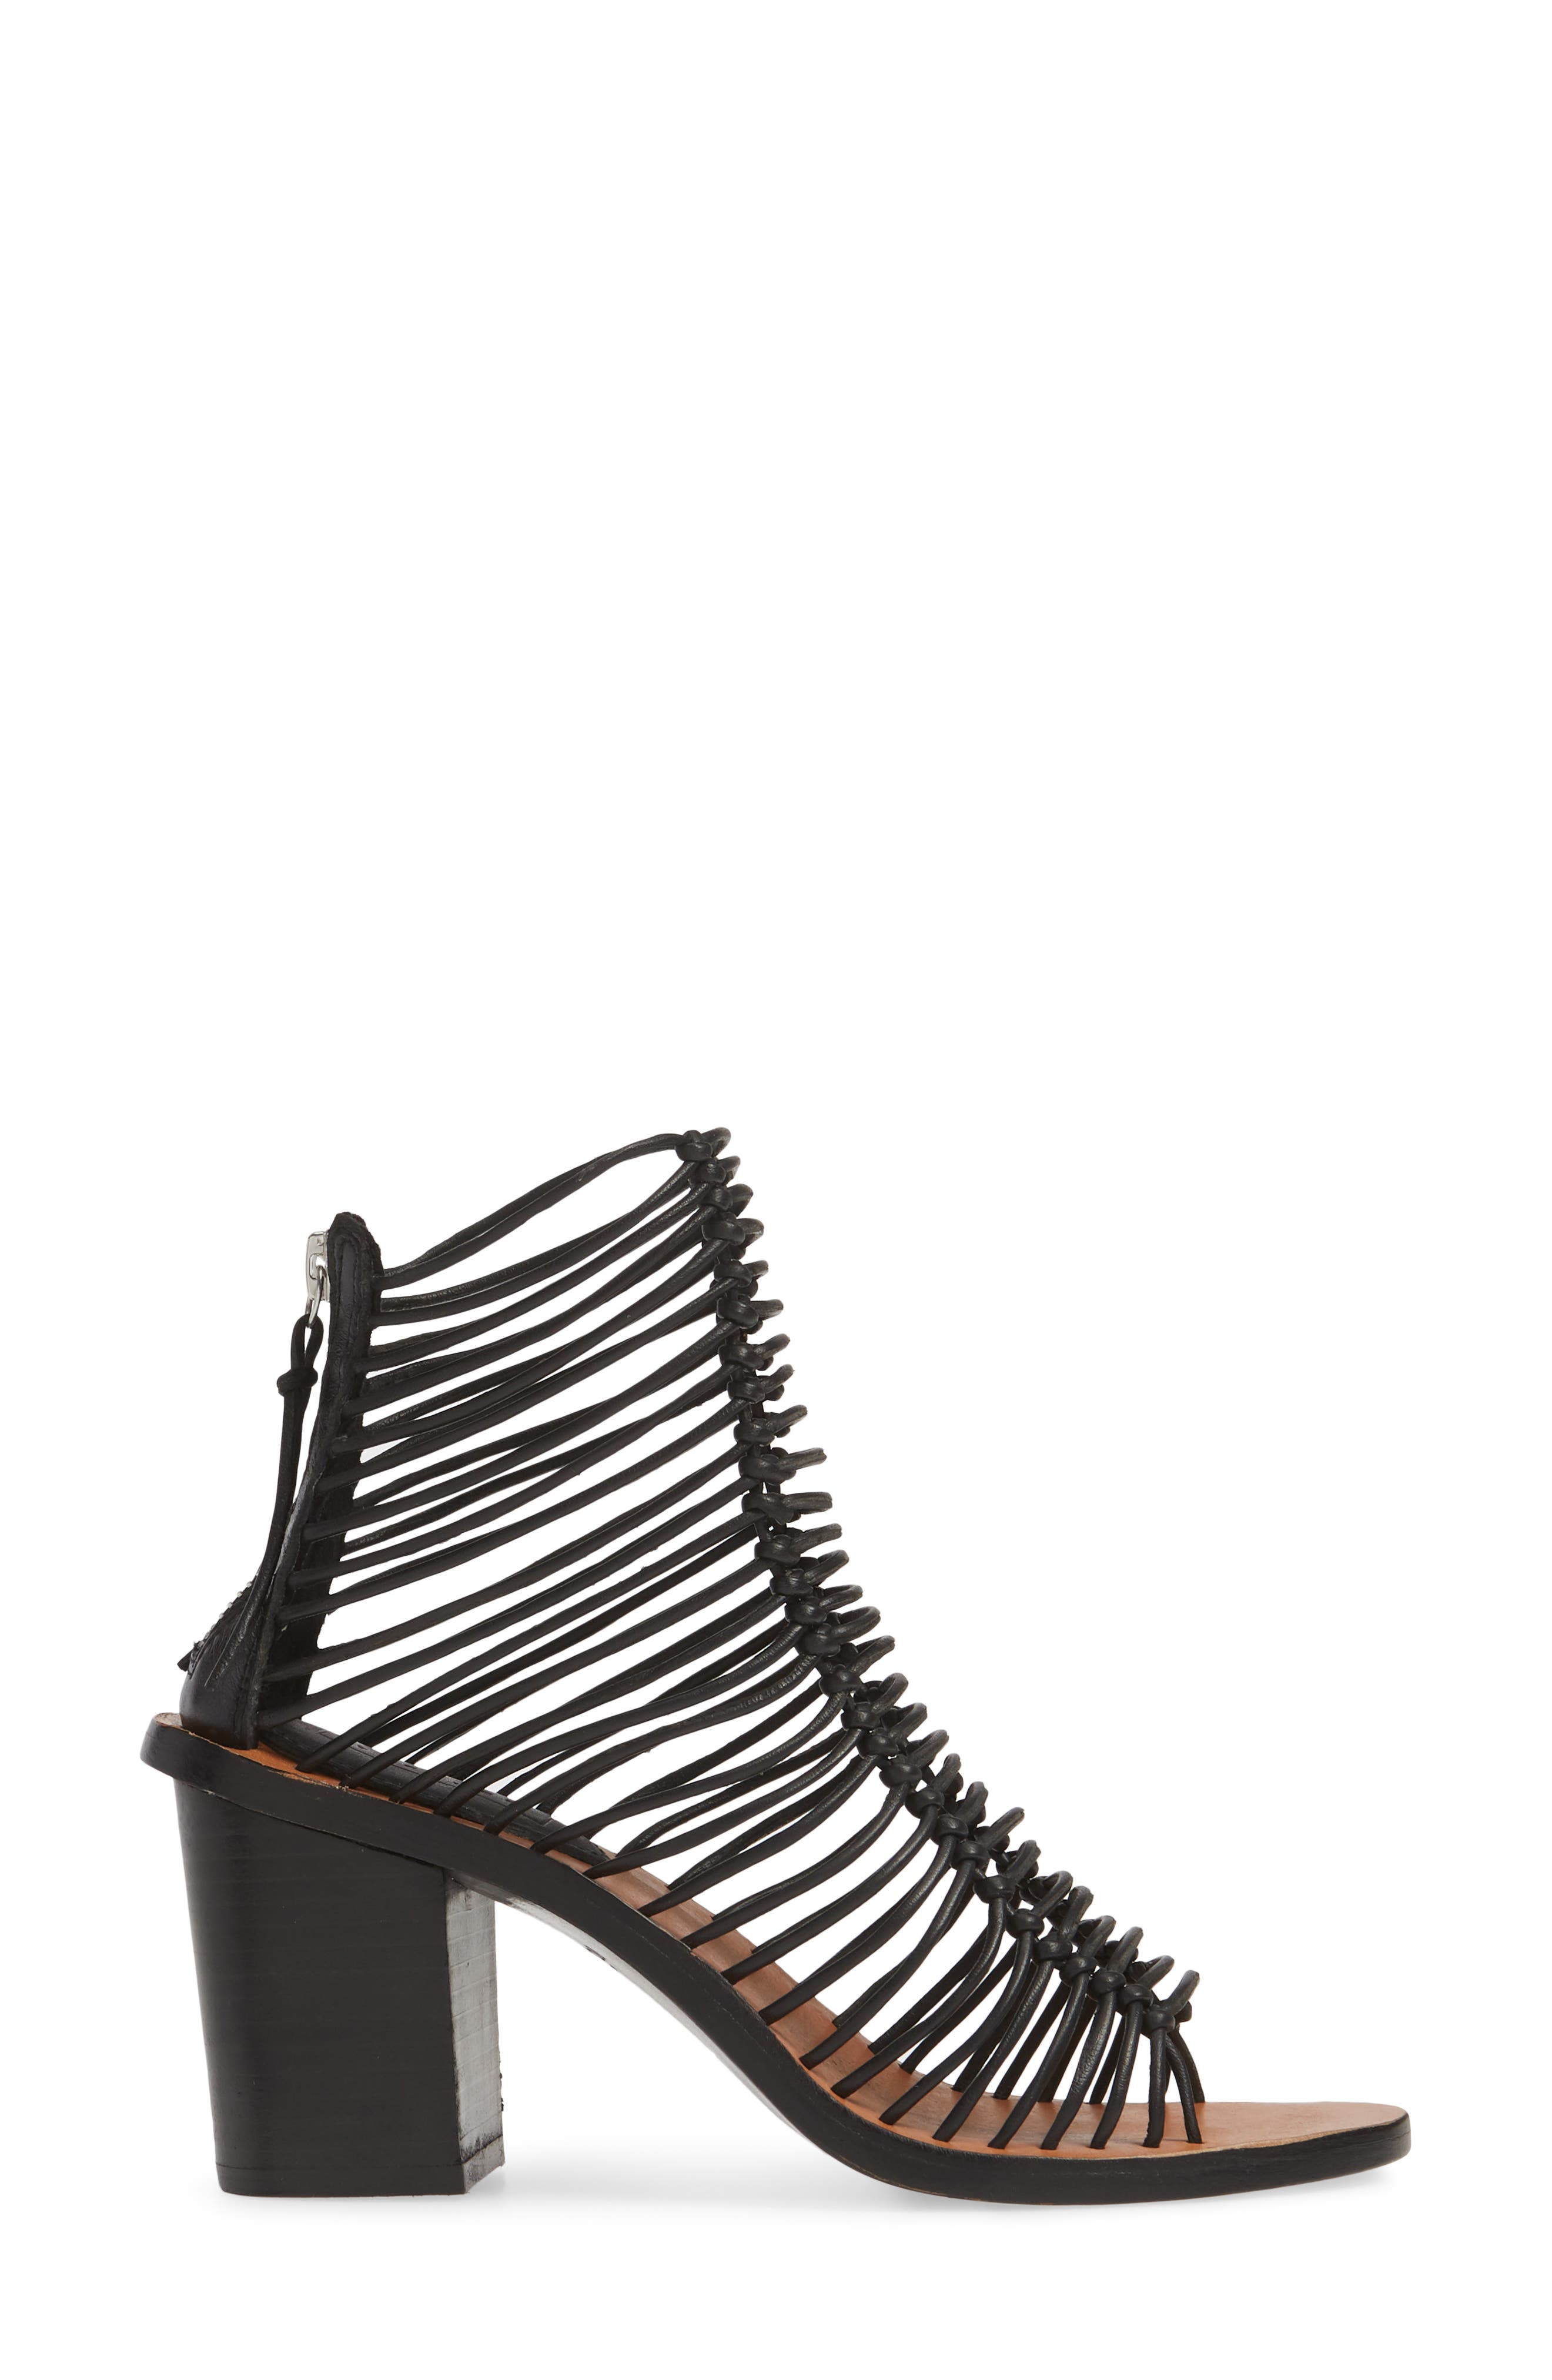 TOPSHOP, Narly Knotted Bootie Sandal, Alternate thumbnail 3, color, BLACK